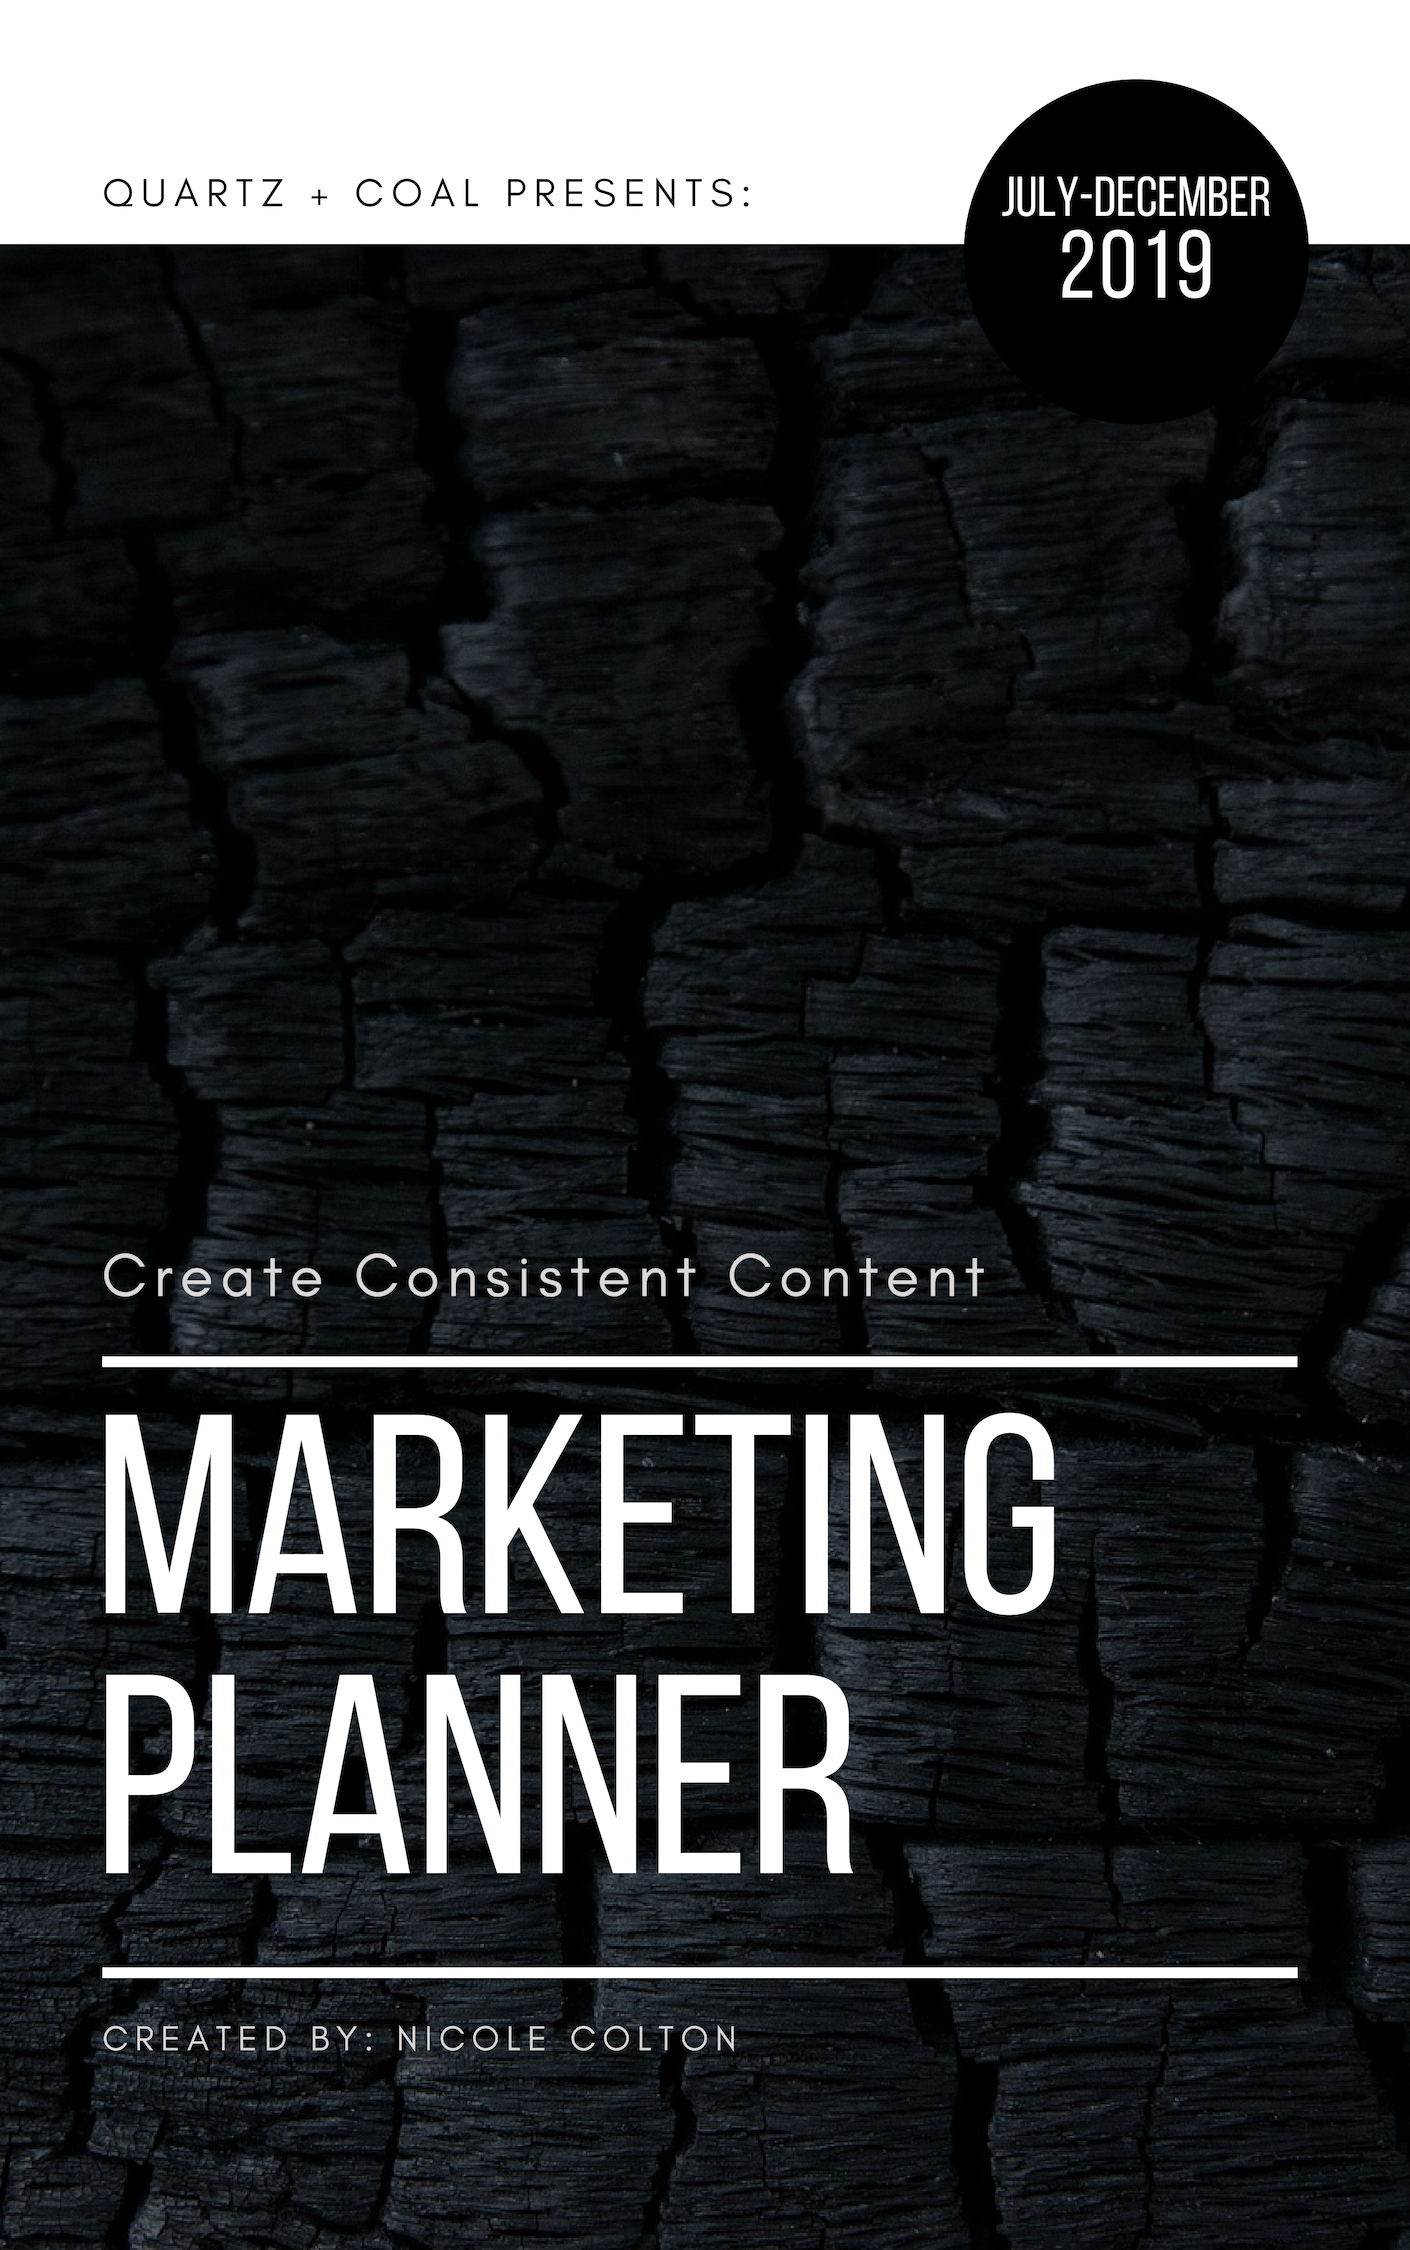 MARKETING PLANNER (1).png